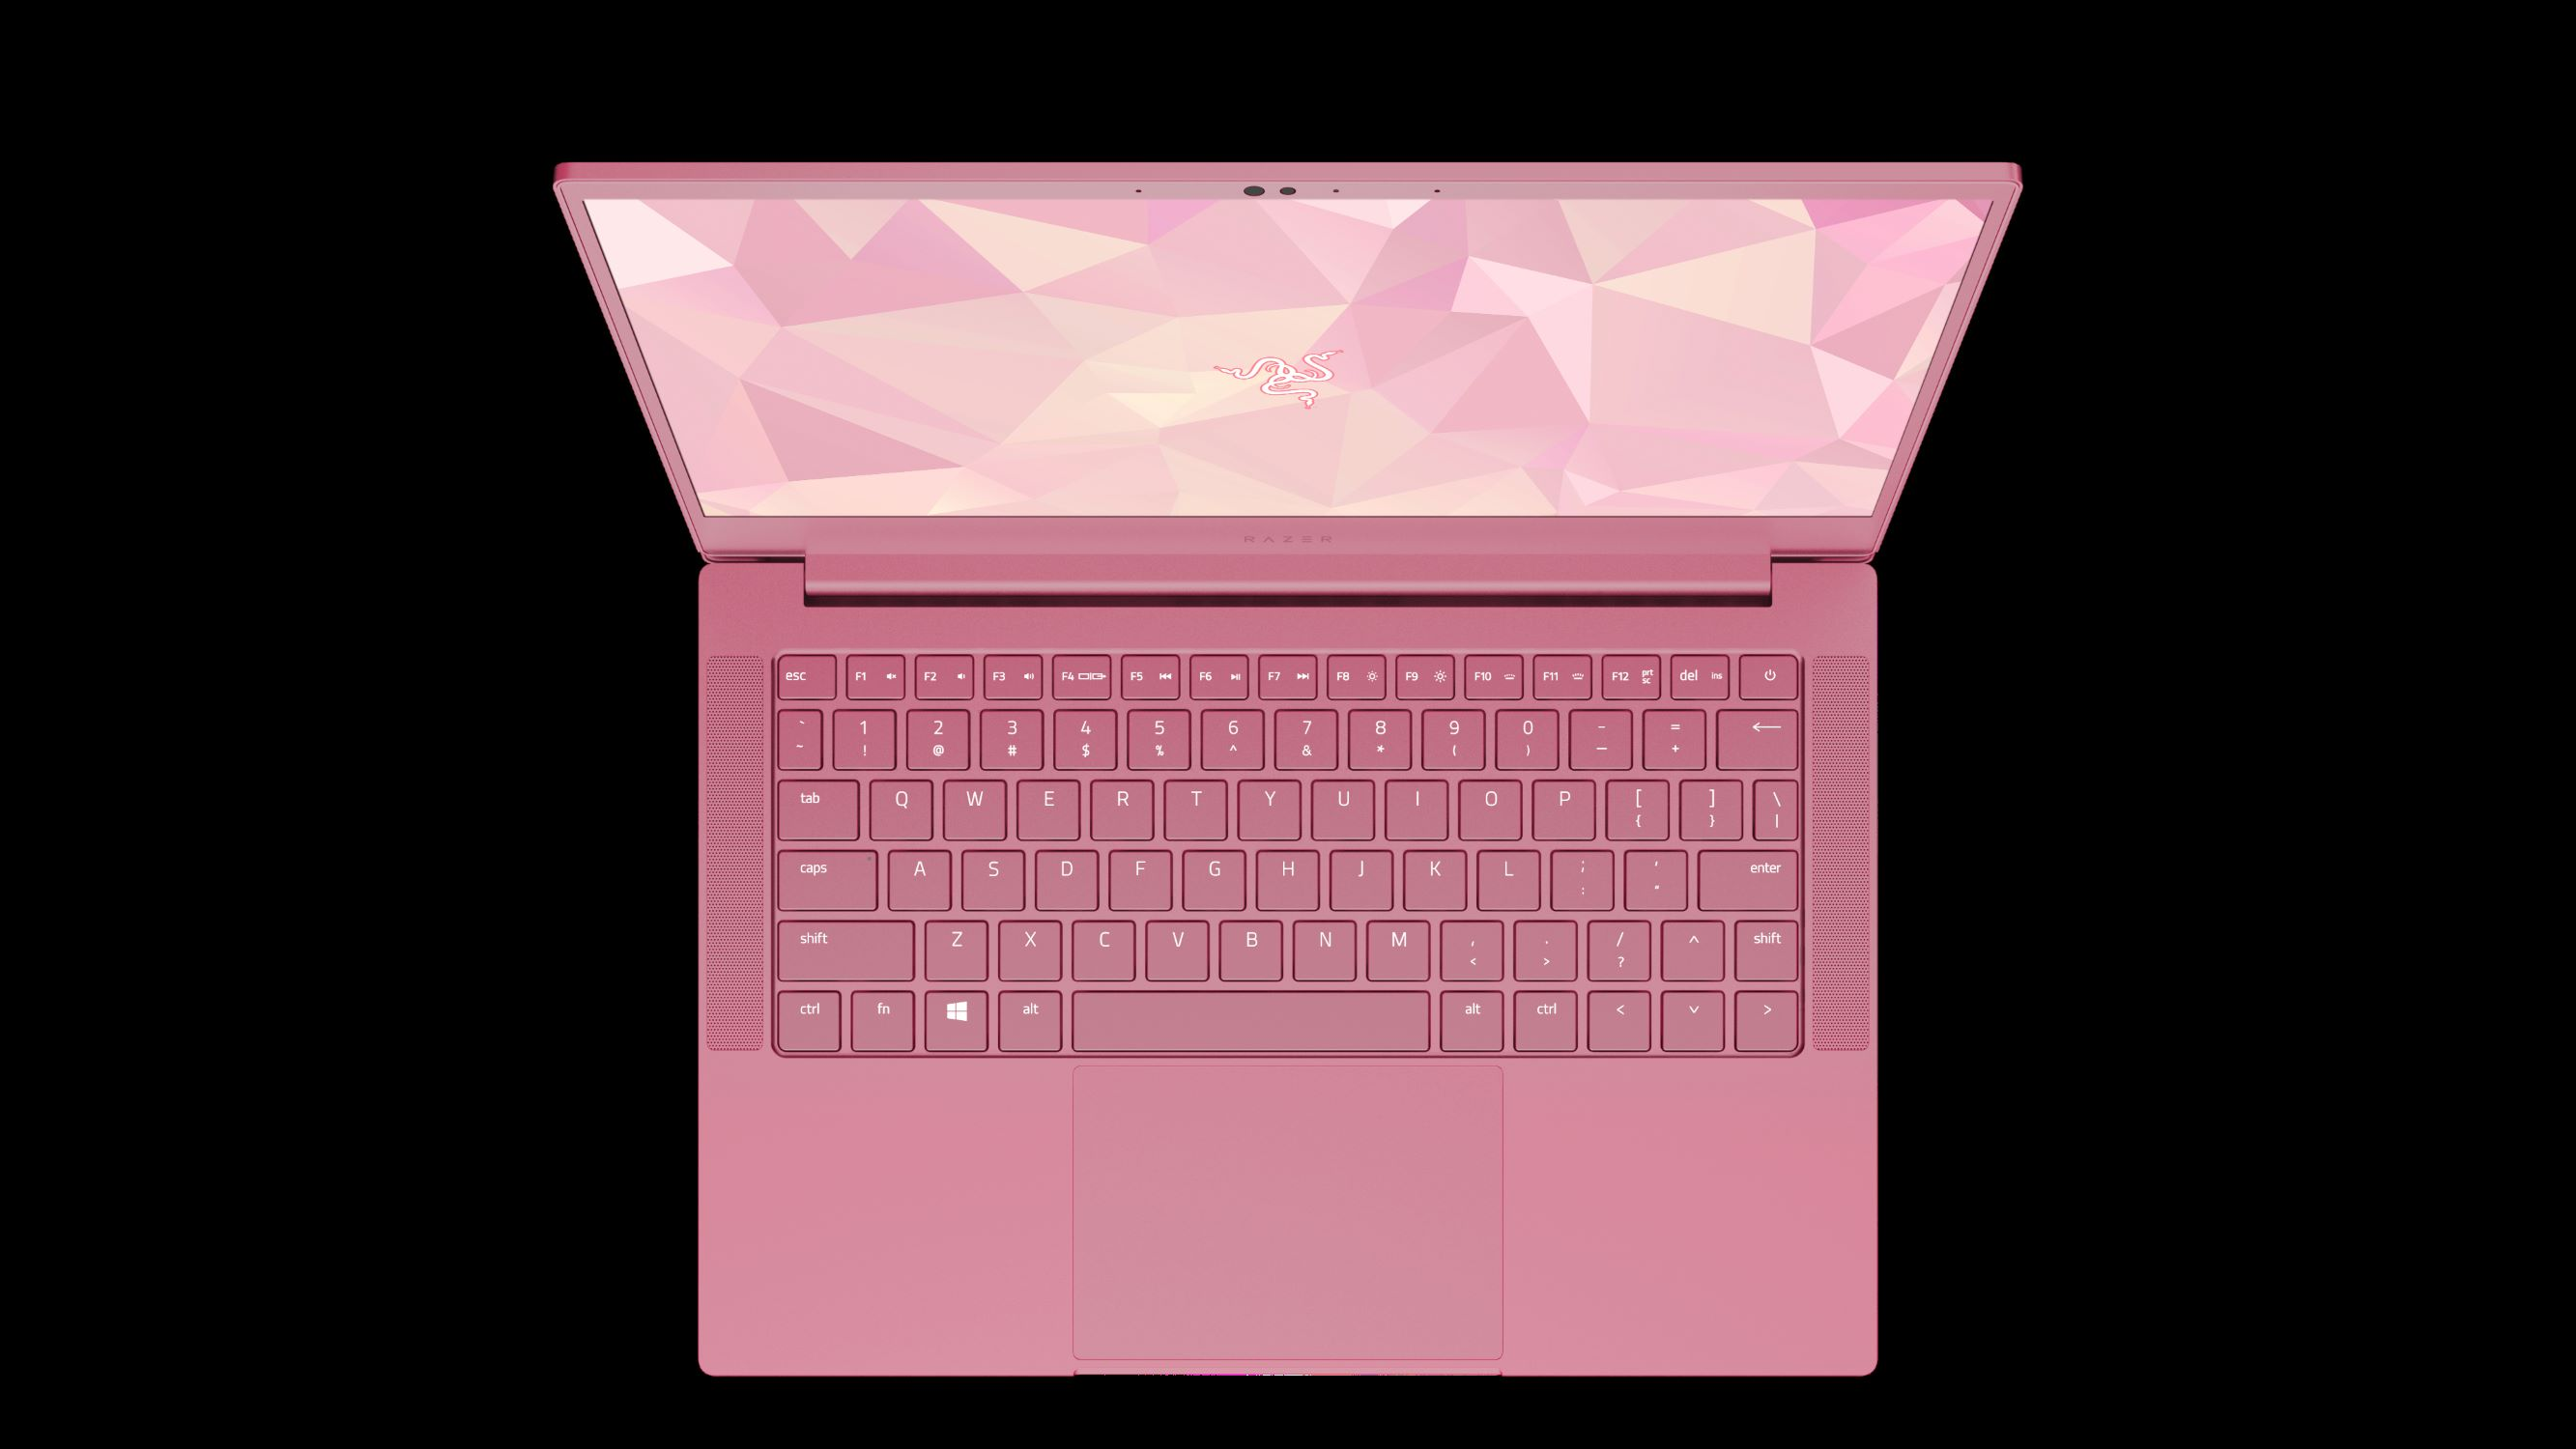 Razer is Pretty in Pink for Valentine's Day